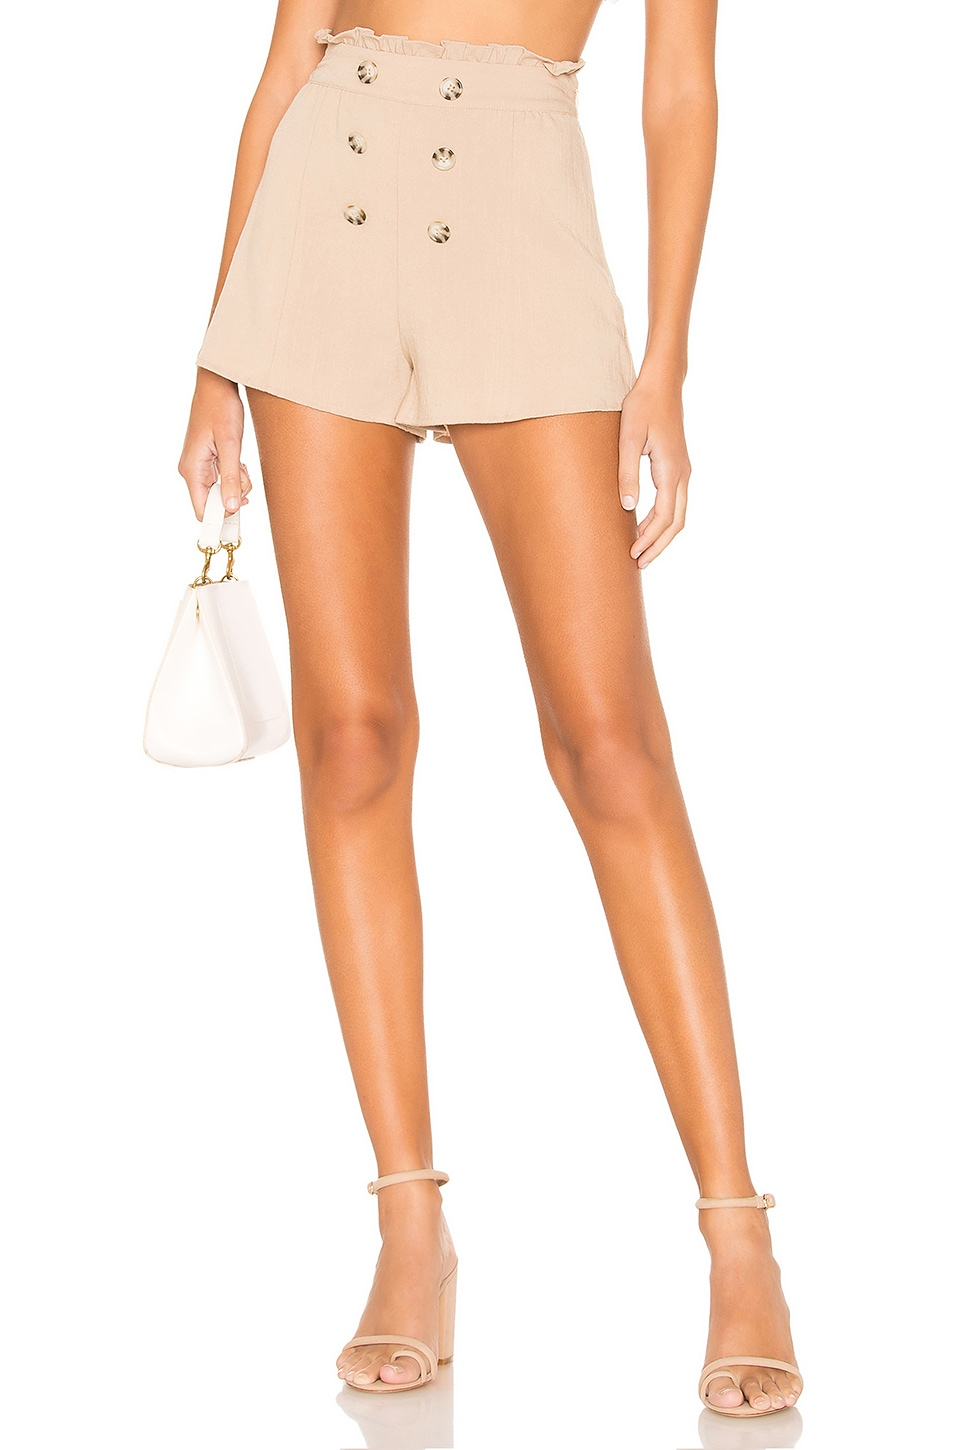 Tularosa Vikki Shorts in Khaki